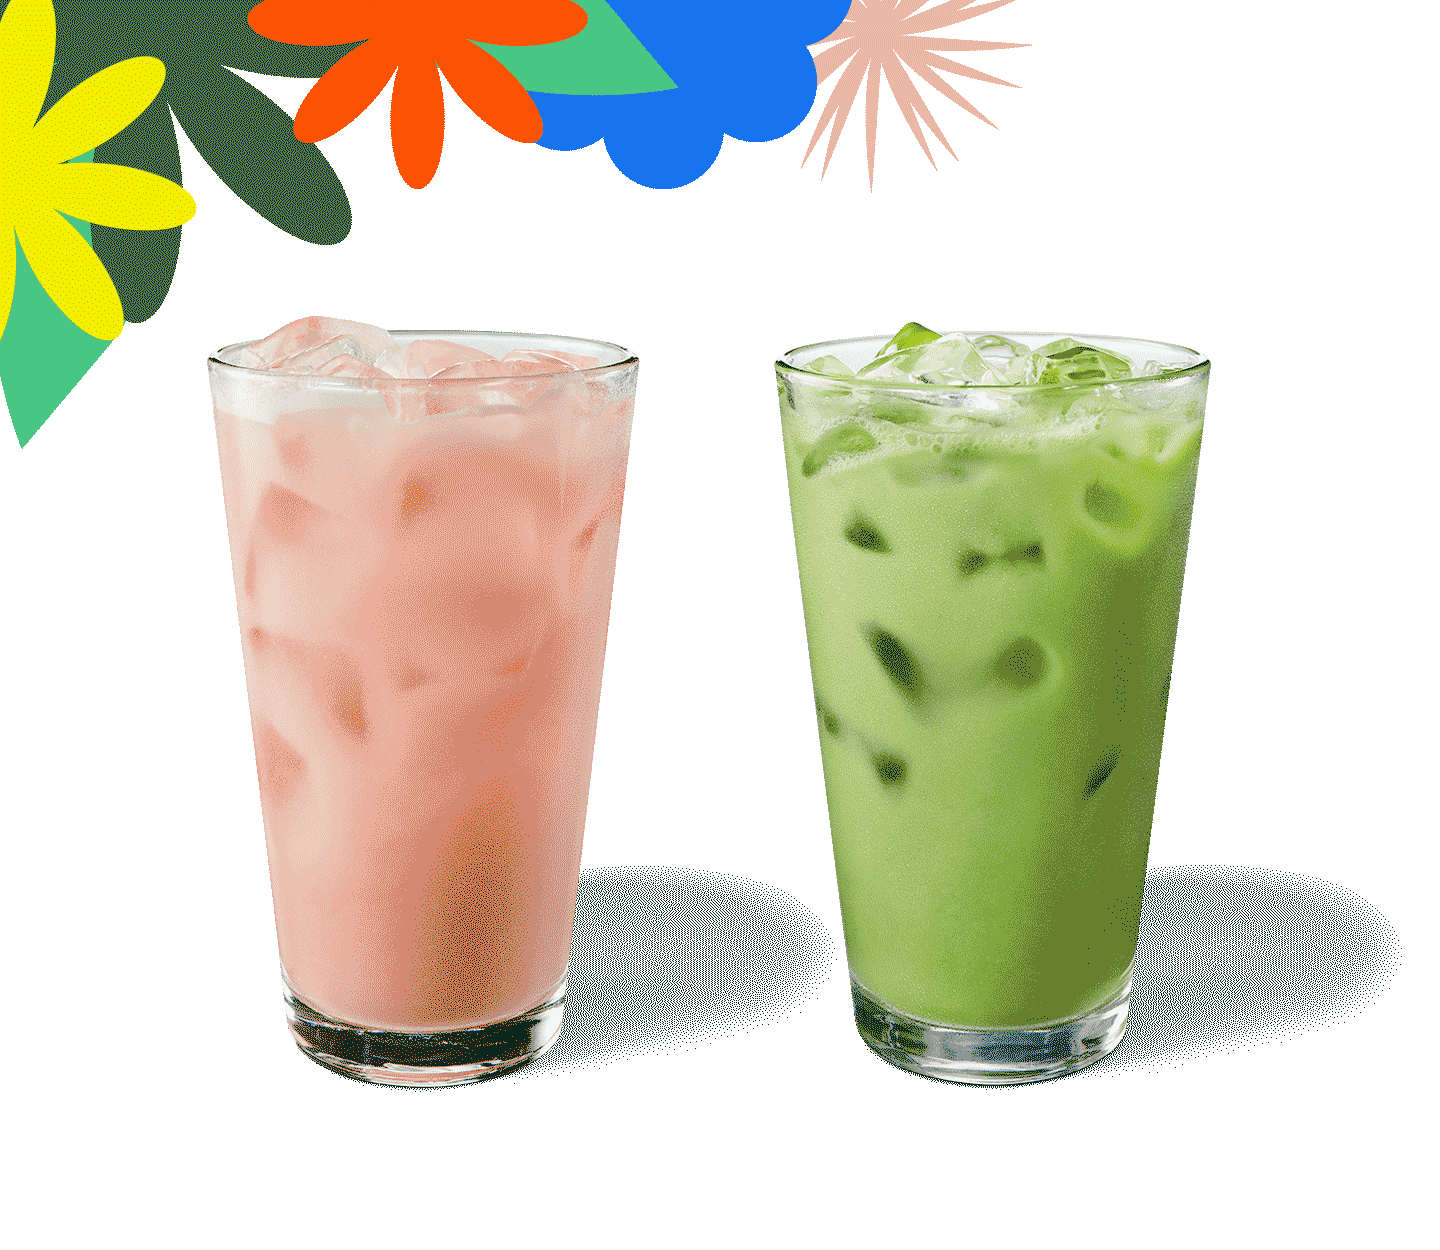 Two colourful iced drinks in glasses sit side by side